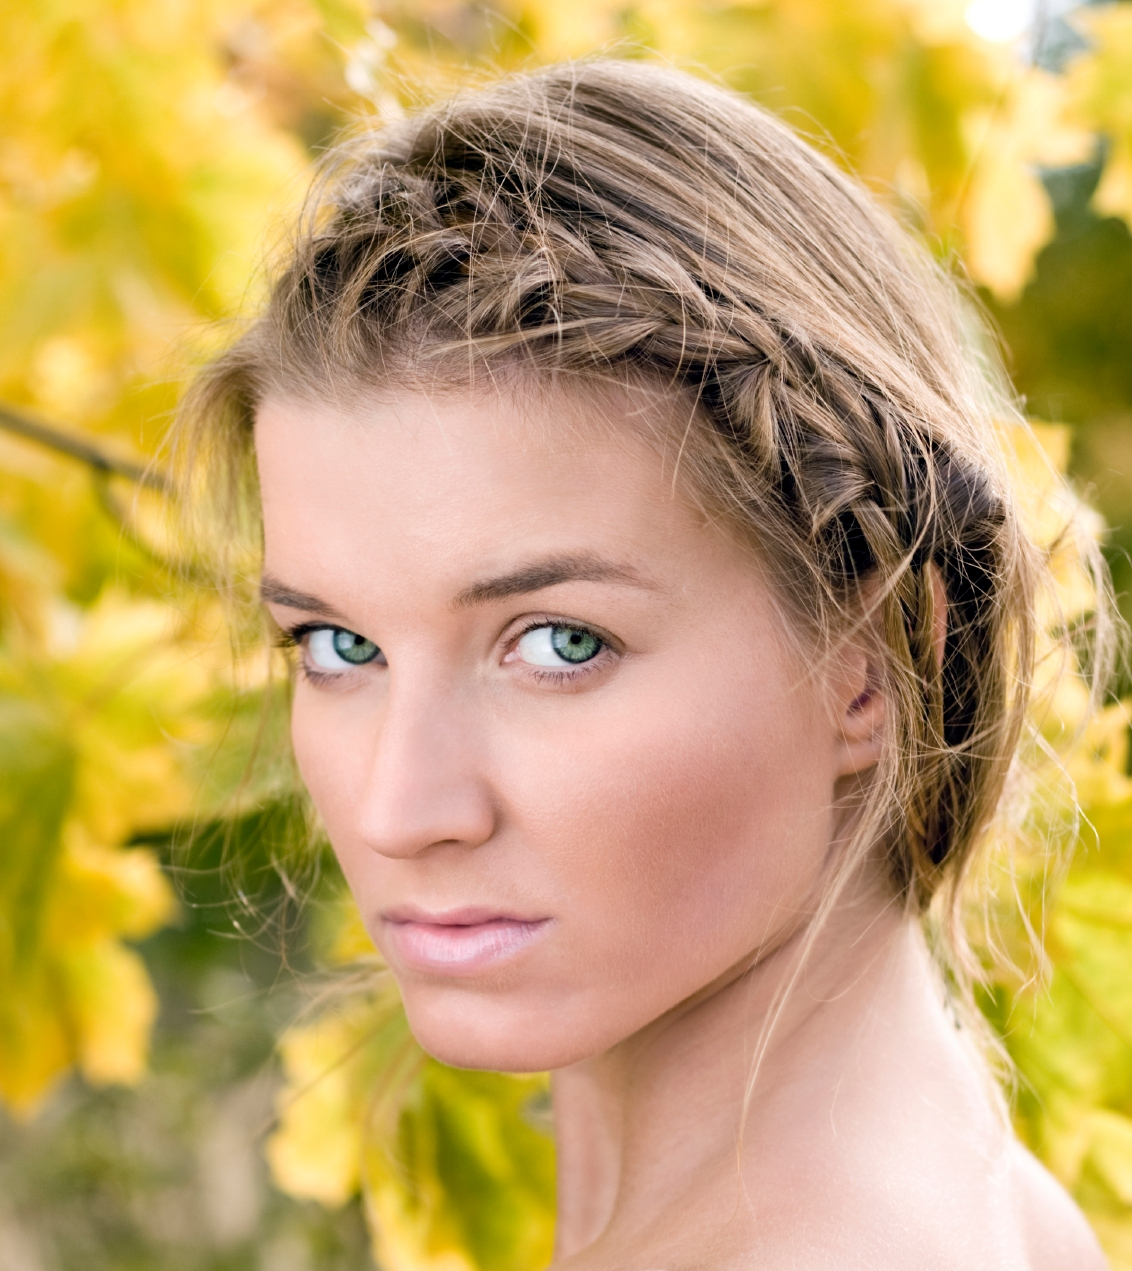 Hairstyles For Long Hair Plaits : Summer-plaits-updo - My New Hair